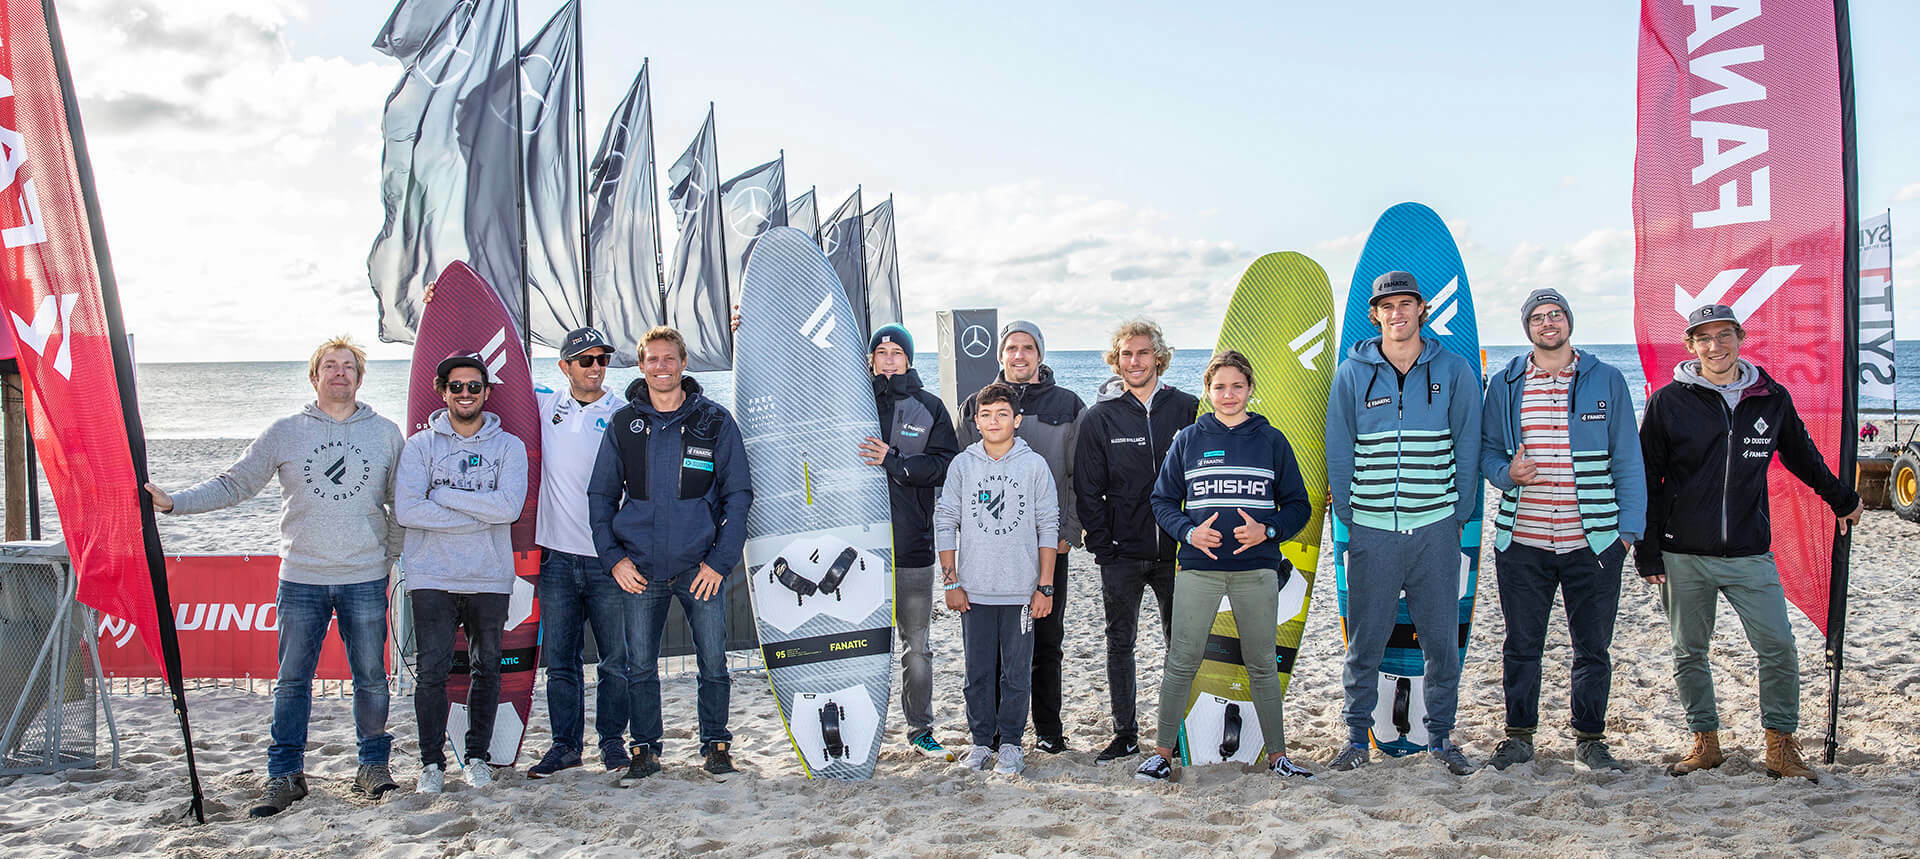 Duotone Windsurfing Sylt 2019 Team